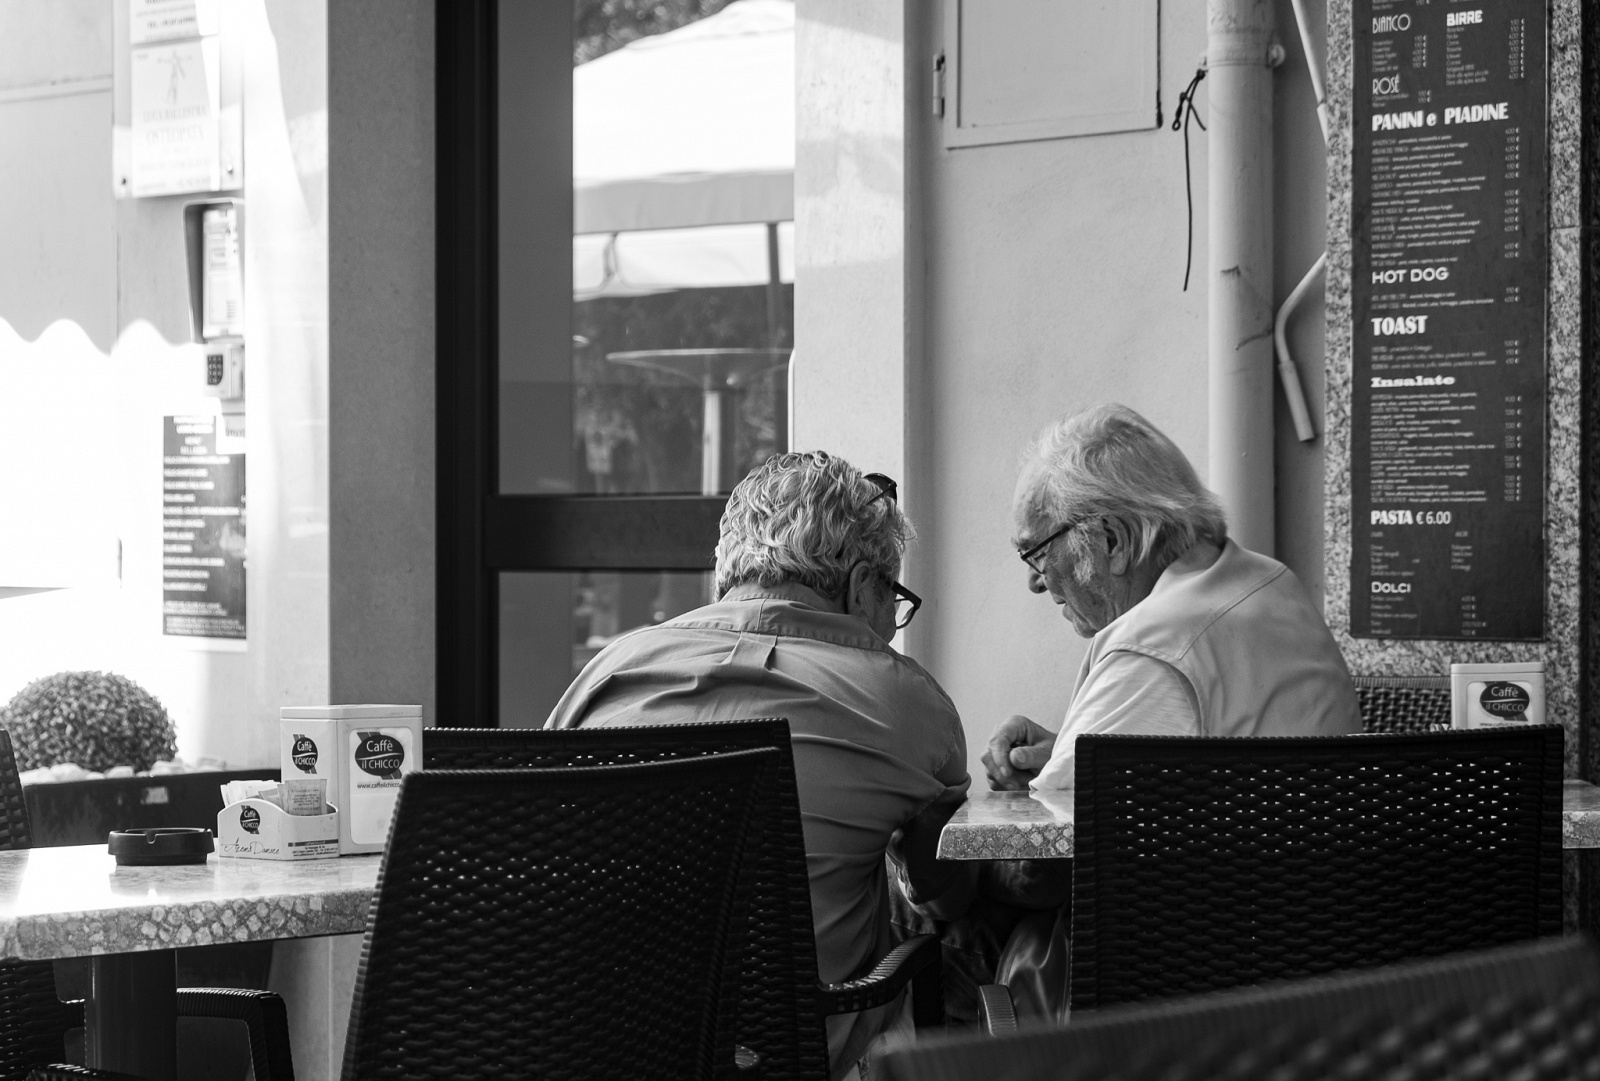 Season's bar - Ventimiglia - Italia - Italian way of life, breakfast and coffee at the bar with an old friend. Best way to start the day